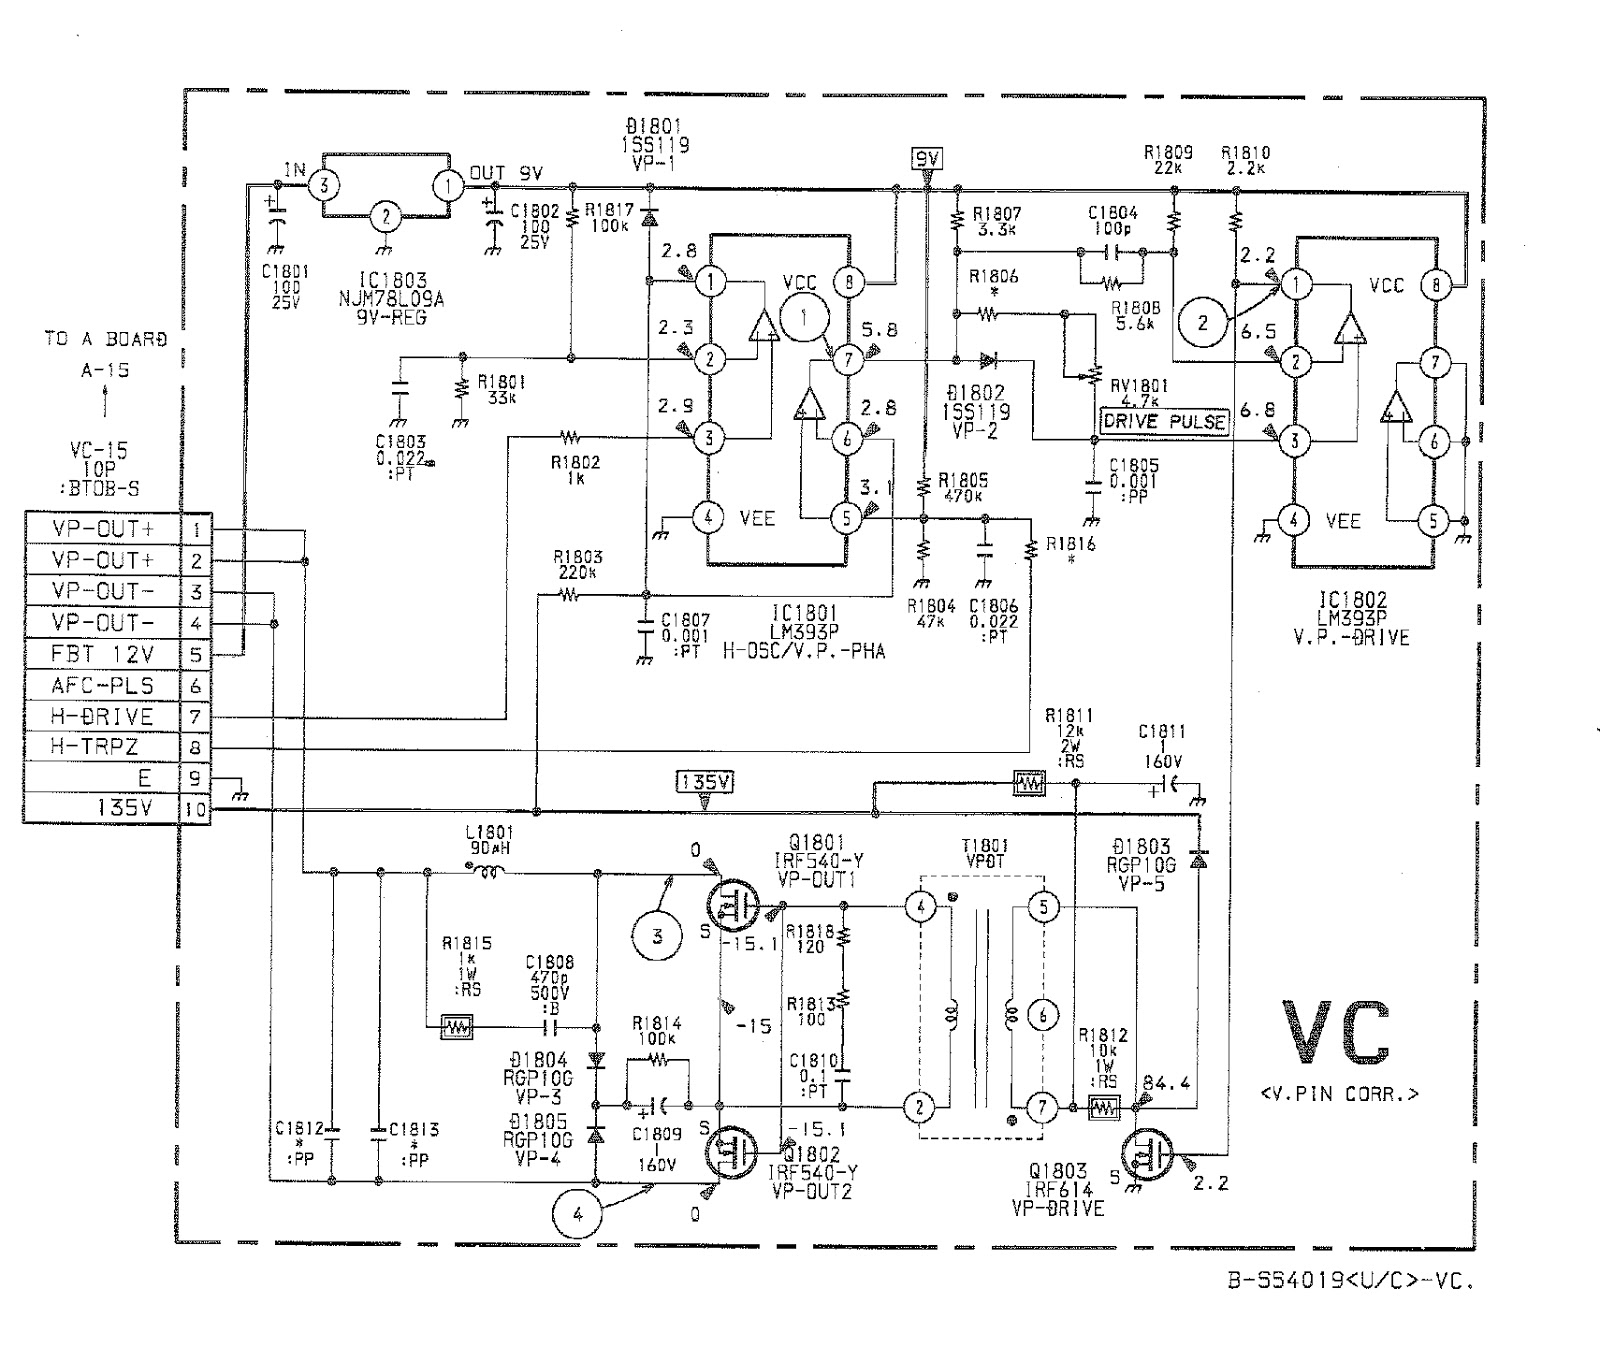 ls180 wiring diagram dodge ram ignition wiring diagrams lcd tv 2008 Chrysler Pacifica Ignition Switch lcd tv wiring diagram wiring diagram led tv wiring image wiring diagram samsung lcd tv wiring